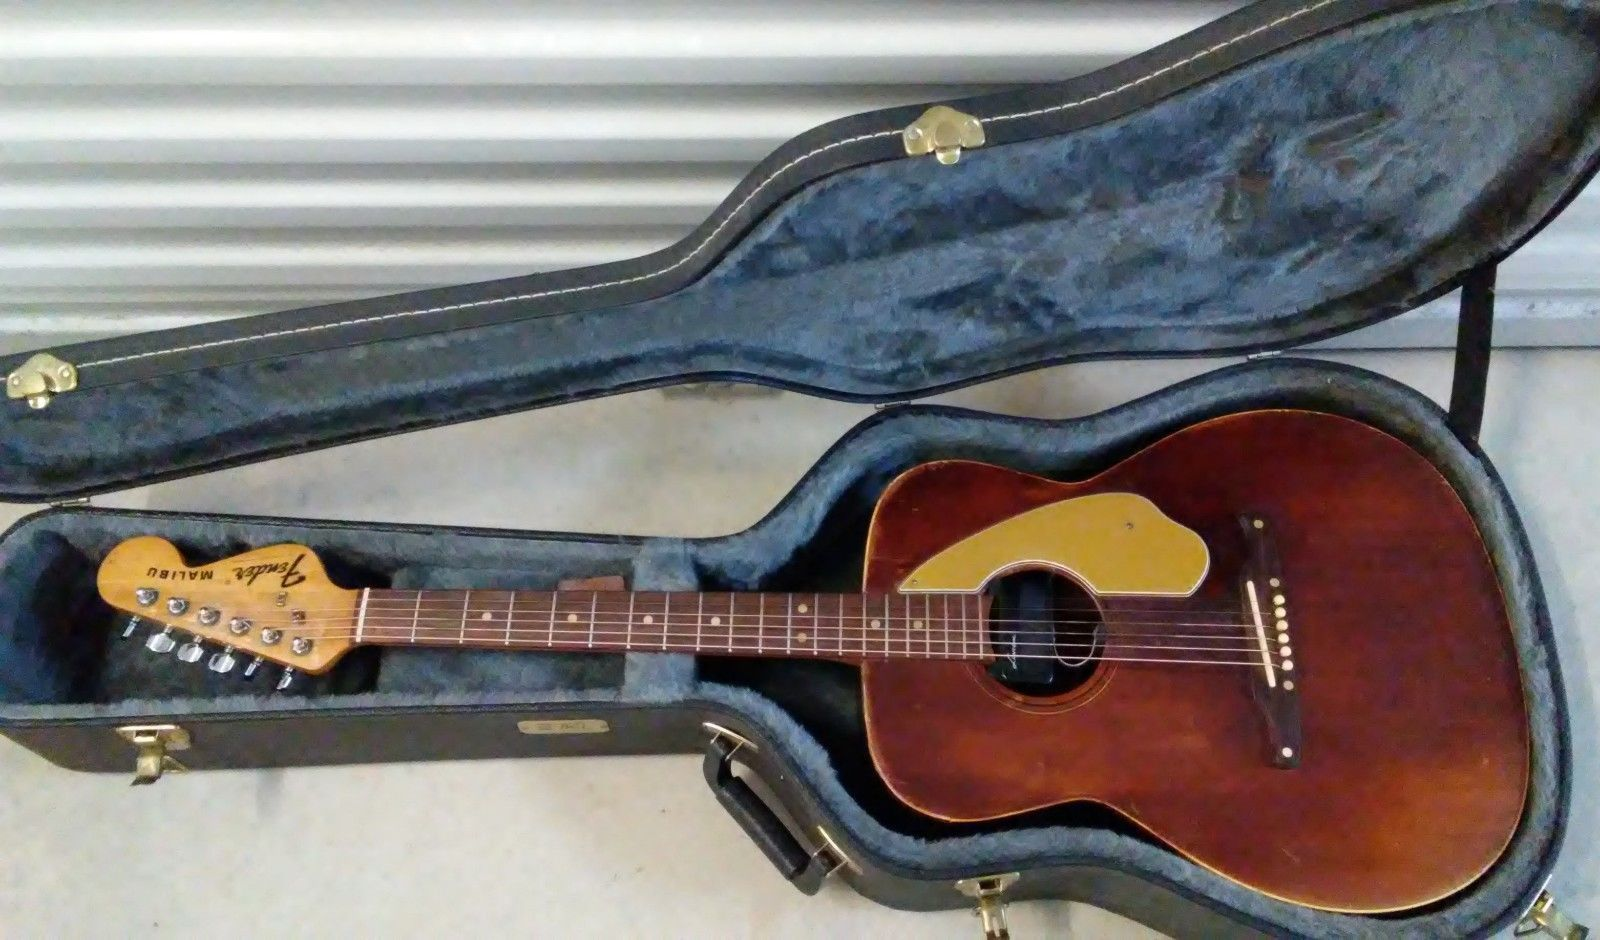 Guitar Fender Usa Malibu Acoustic Guitar Vintage 1960 S With Tkl Hard Case Please Retweet Fender Usa Fender Vintage Classic Guitar